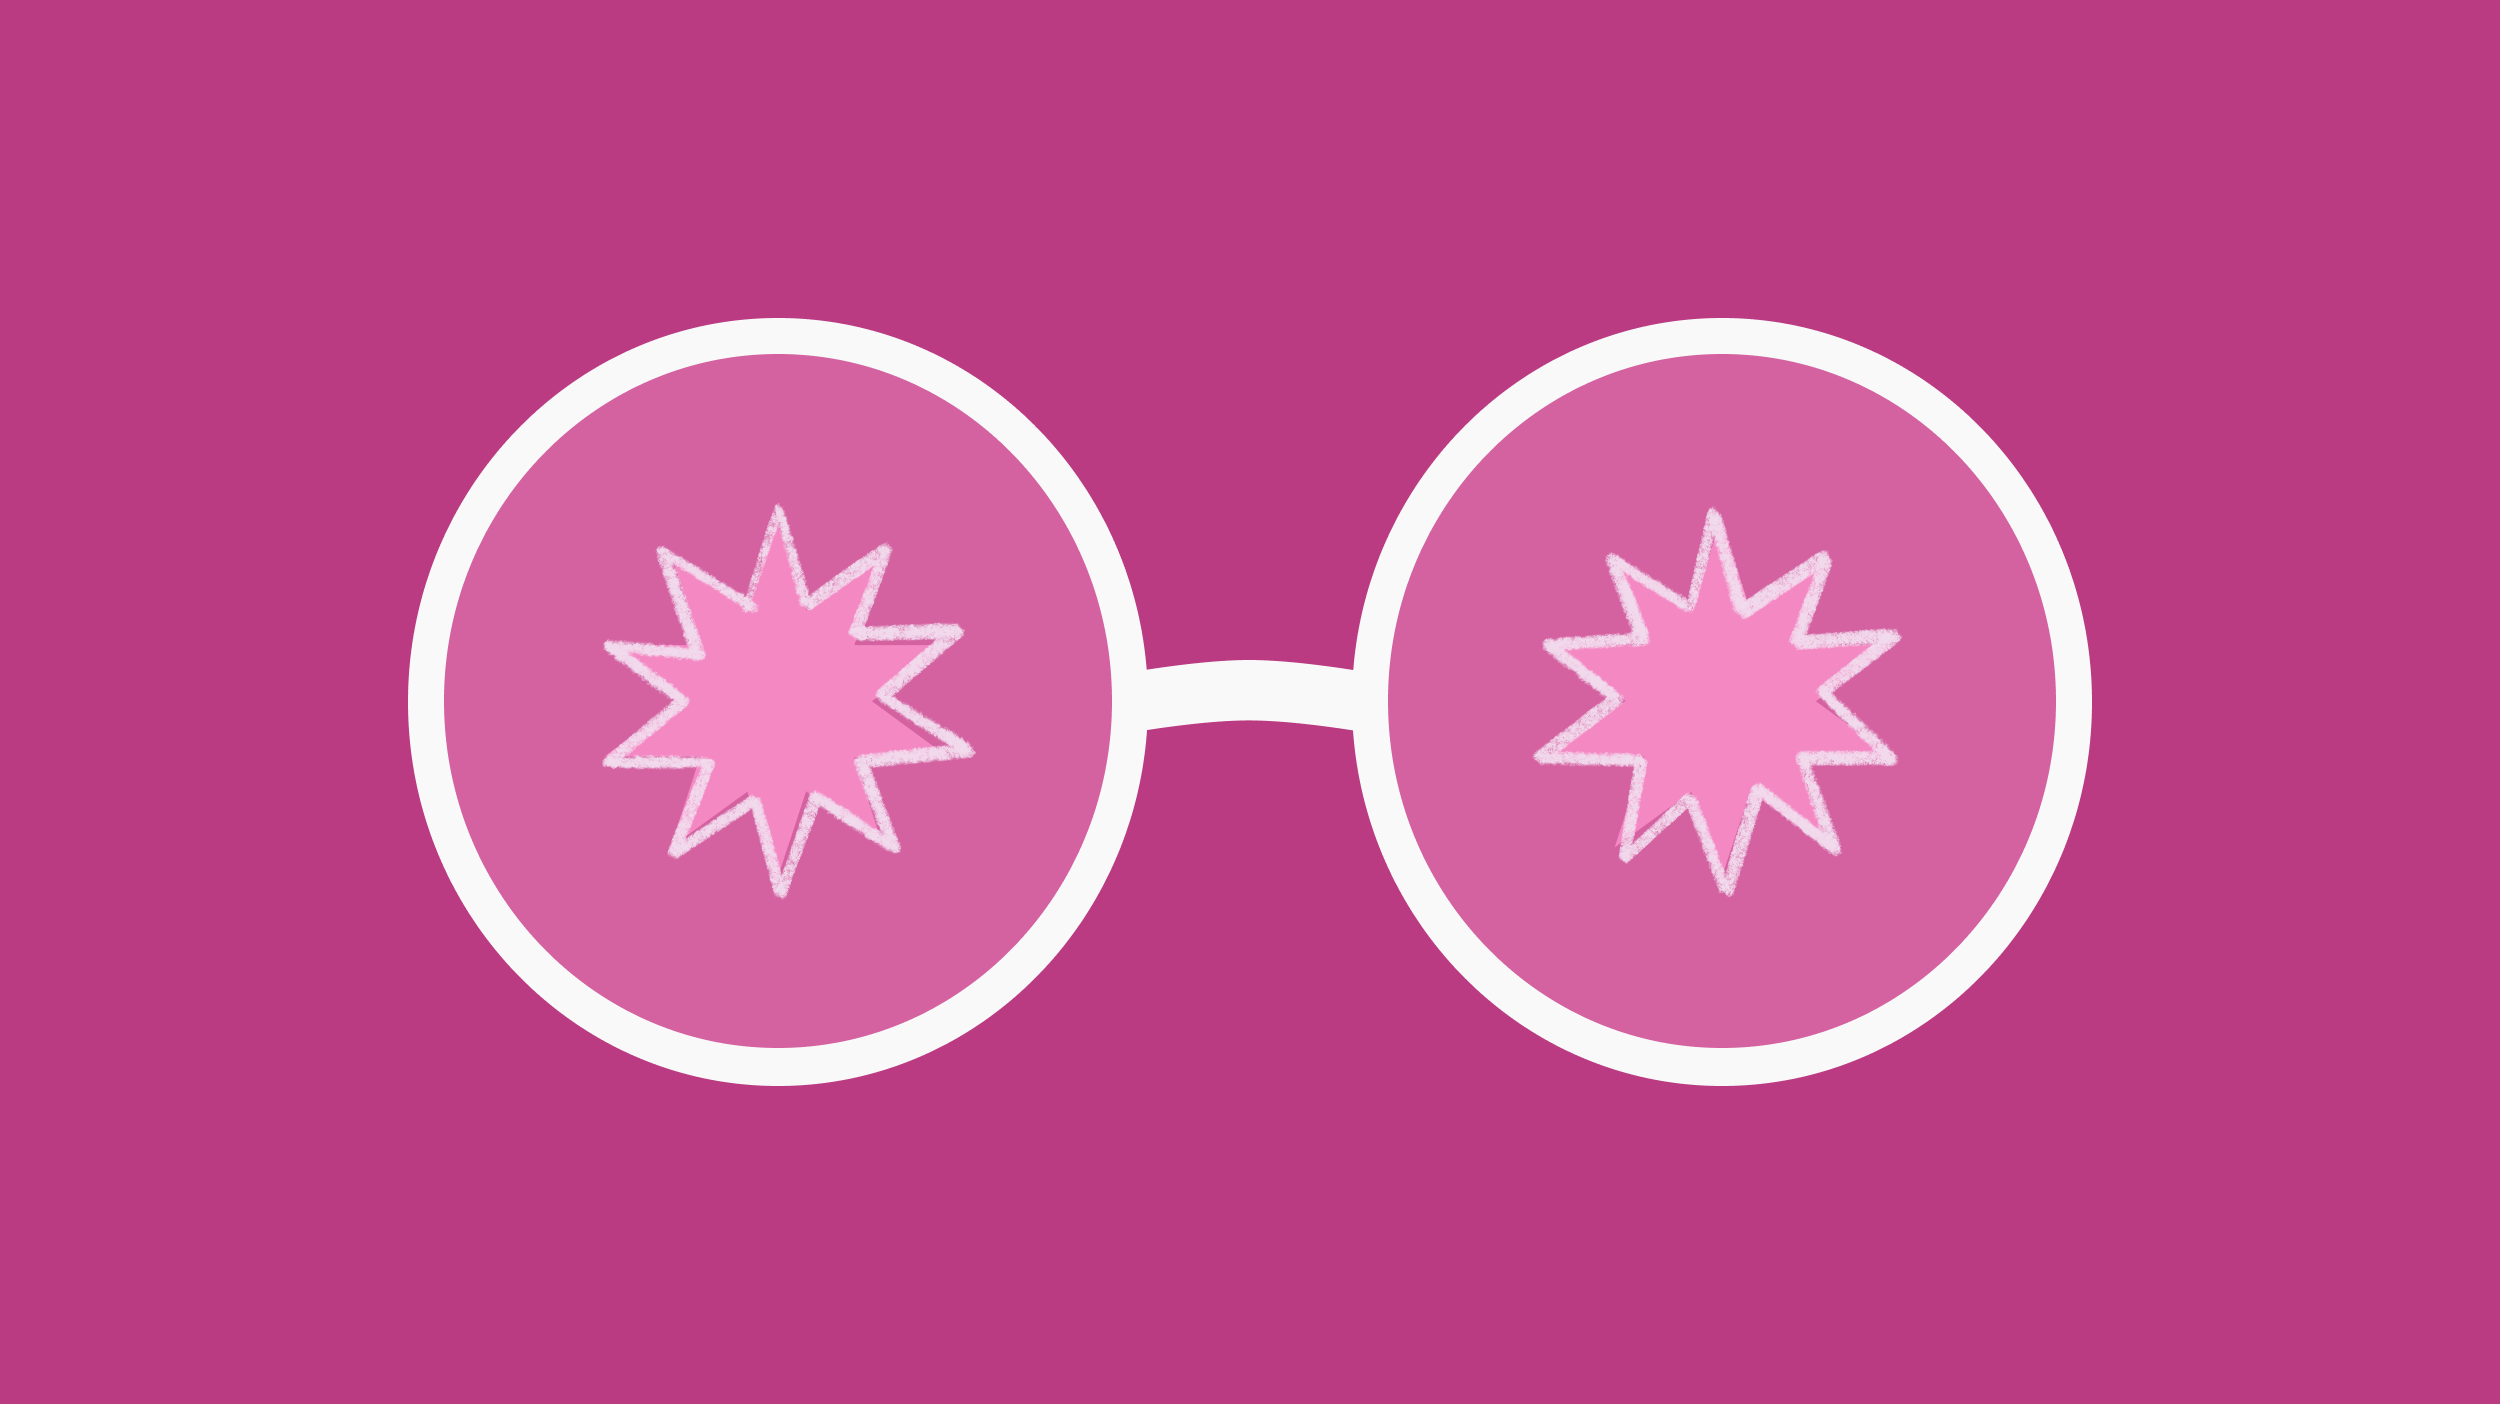 Glasses on pink background